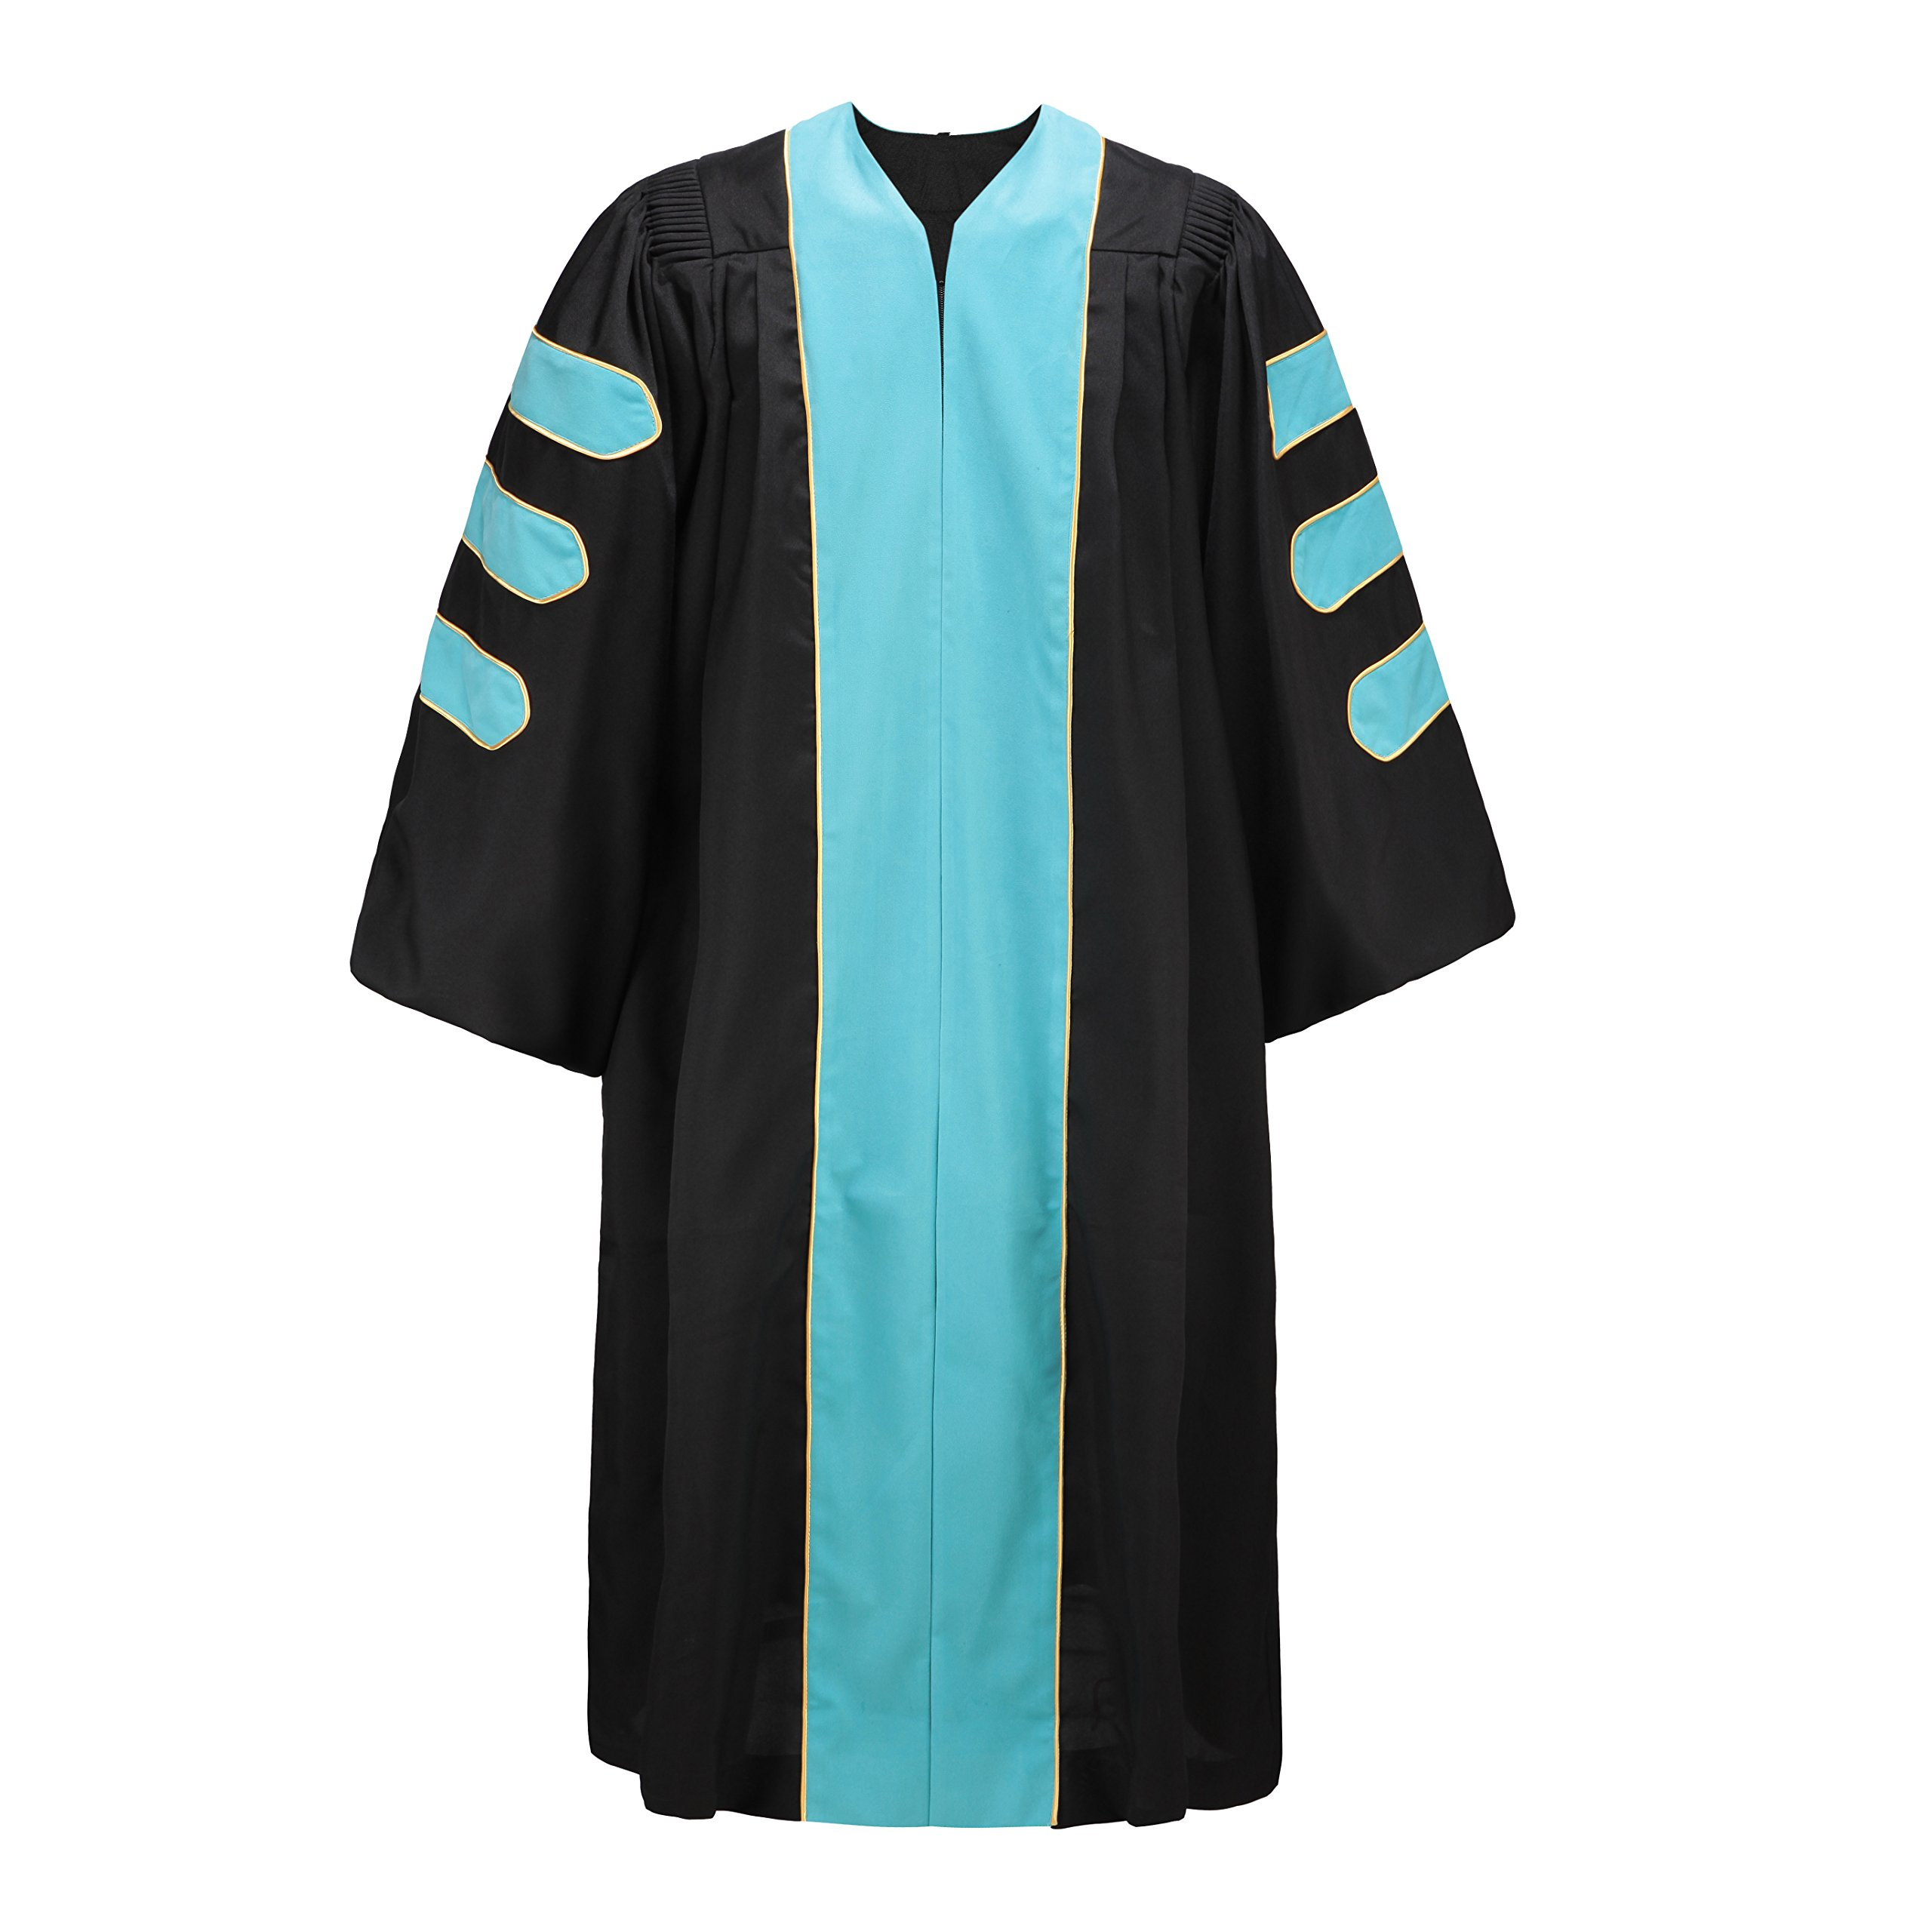 Robe Depot Deluxe Doctoral Gown for Professor, Sky Blue Velvet Trim Gold Piping Size 54